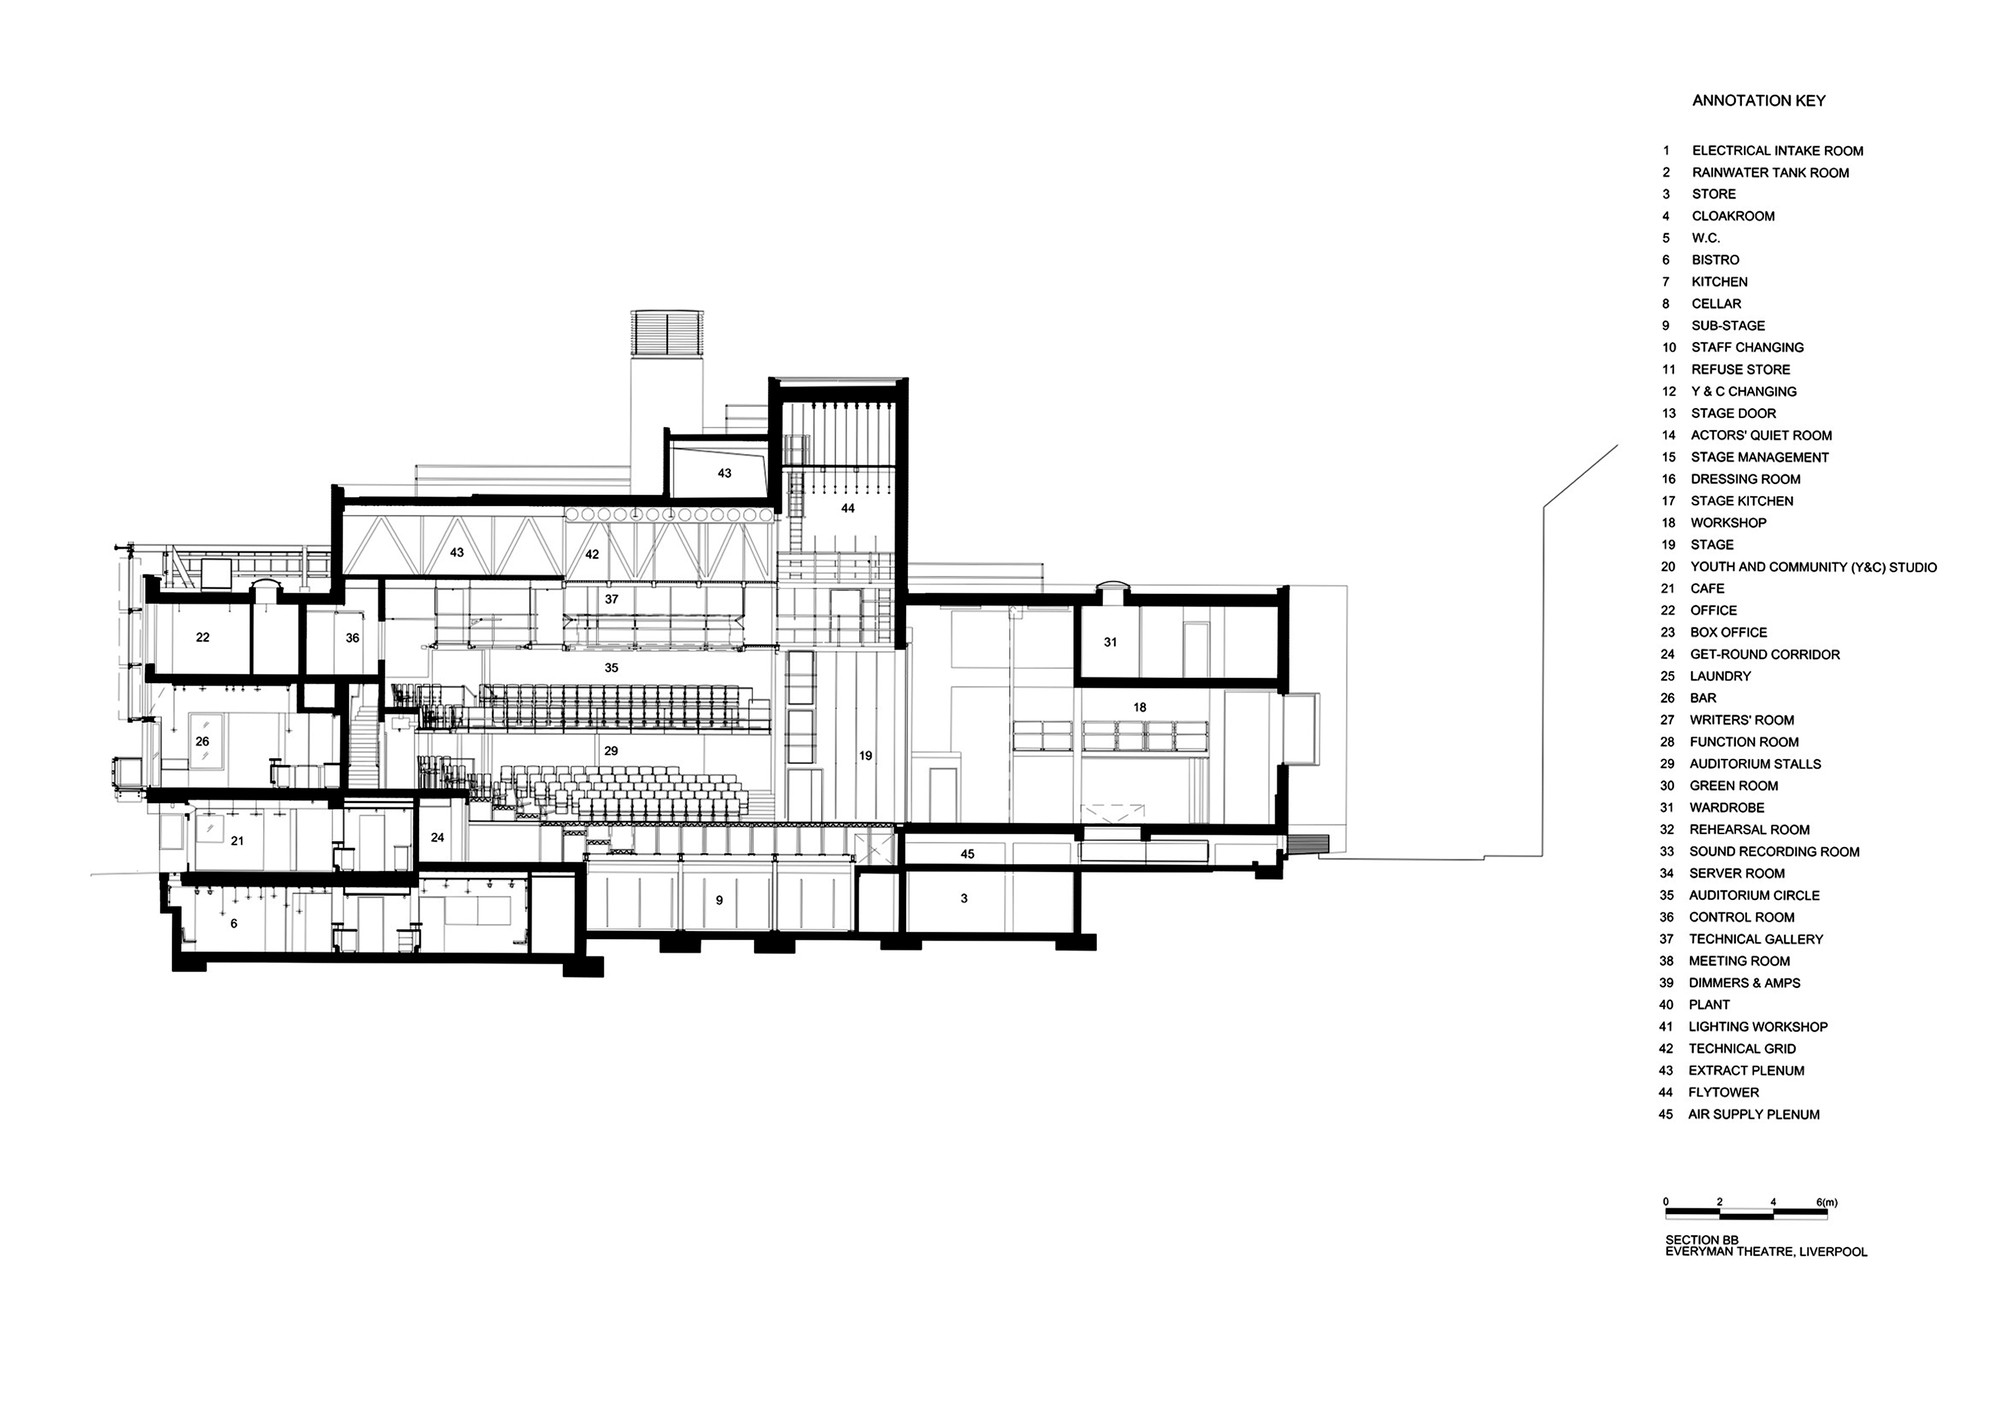 One Storey House Plan additionally Room Acoustic Analysis And Acoustic Treatment For An Audiophile Listening Room in addition The Red Ruby  munity Theater Construction Documentation in addition Speaker Placement as well Basic Design Goals Room Dim. on theater ceiling